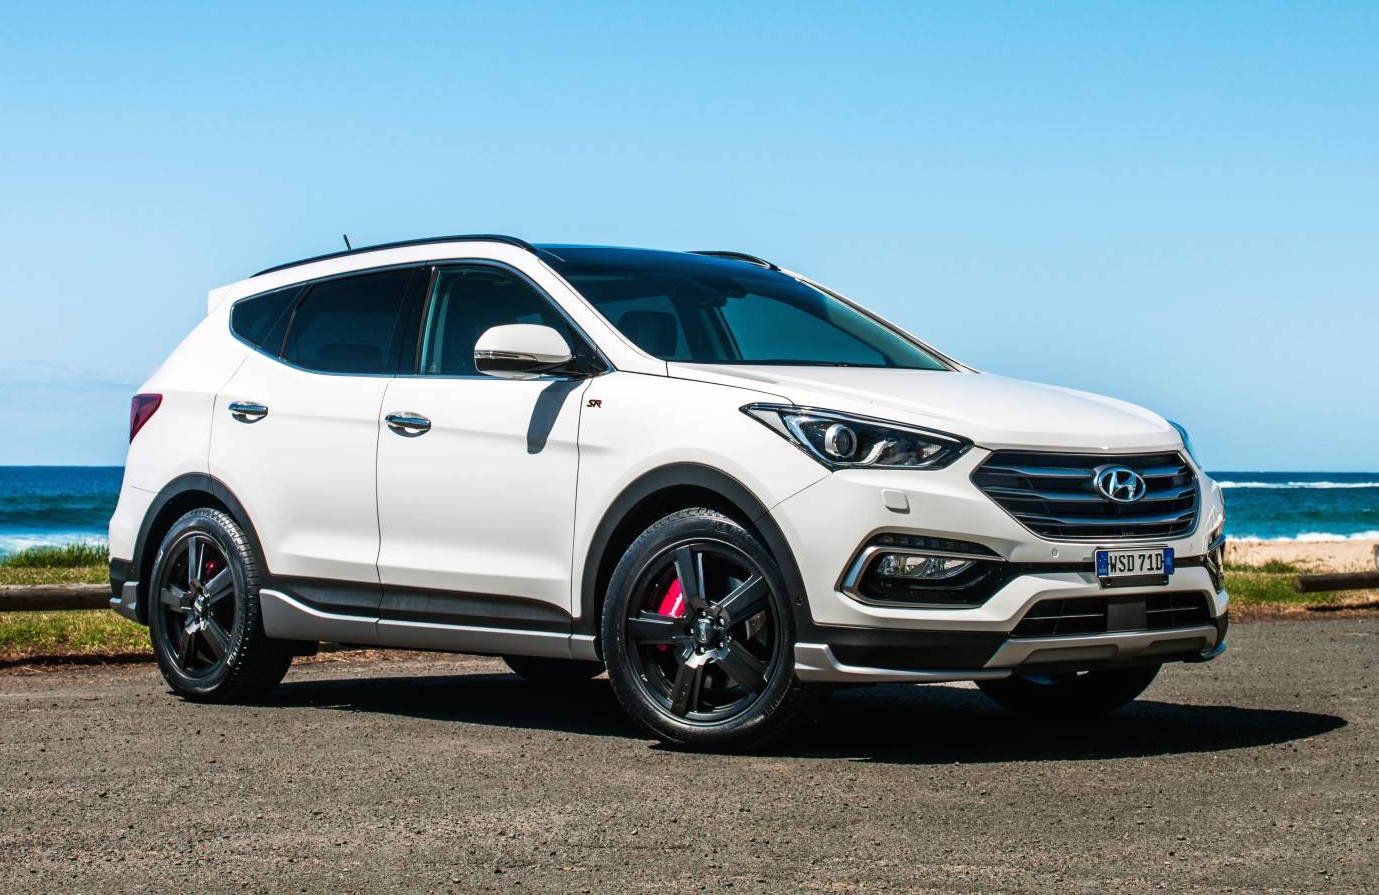 New Car Update >> 2016 Hyundai Santa Fe Series II on sale in Australia from $38,490 | PerformanceDrive